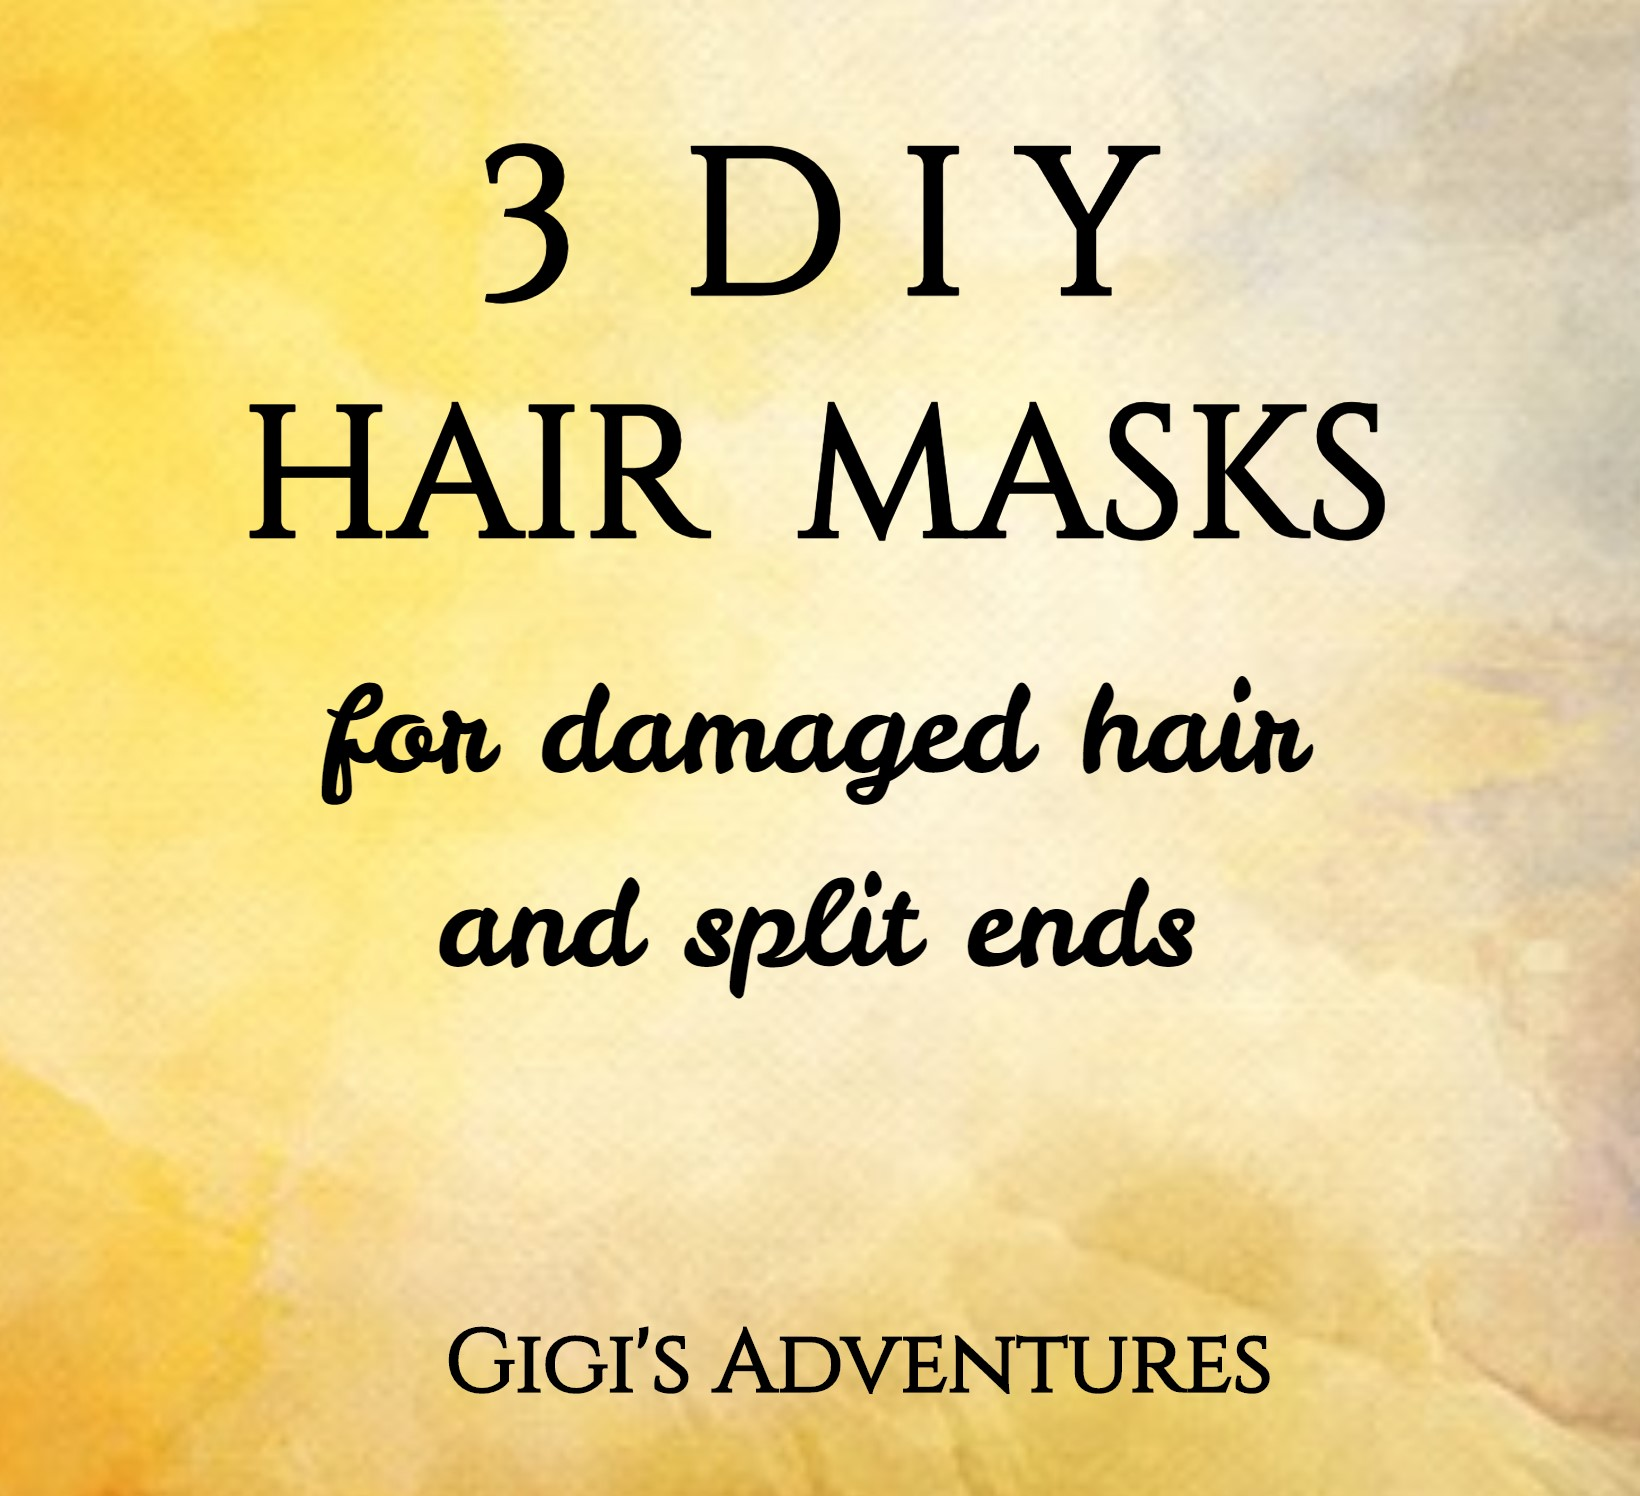 3 Diy Hair Masks For Damaged Hair And Split Ends That Ll